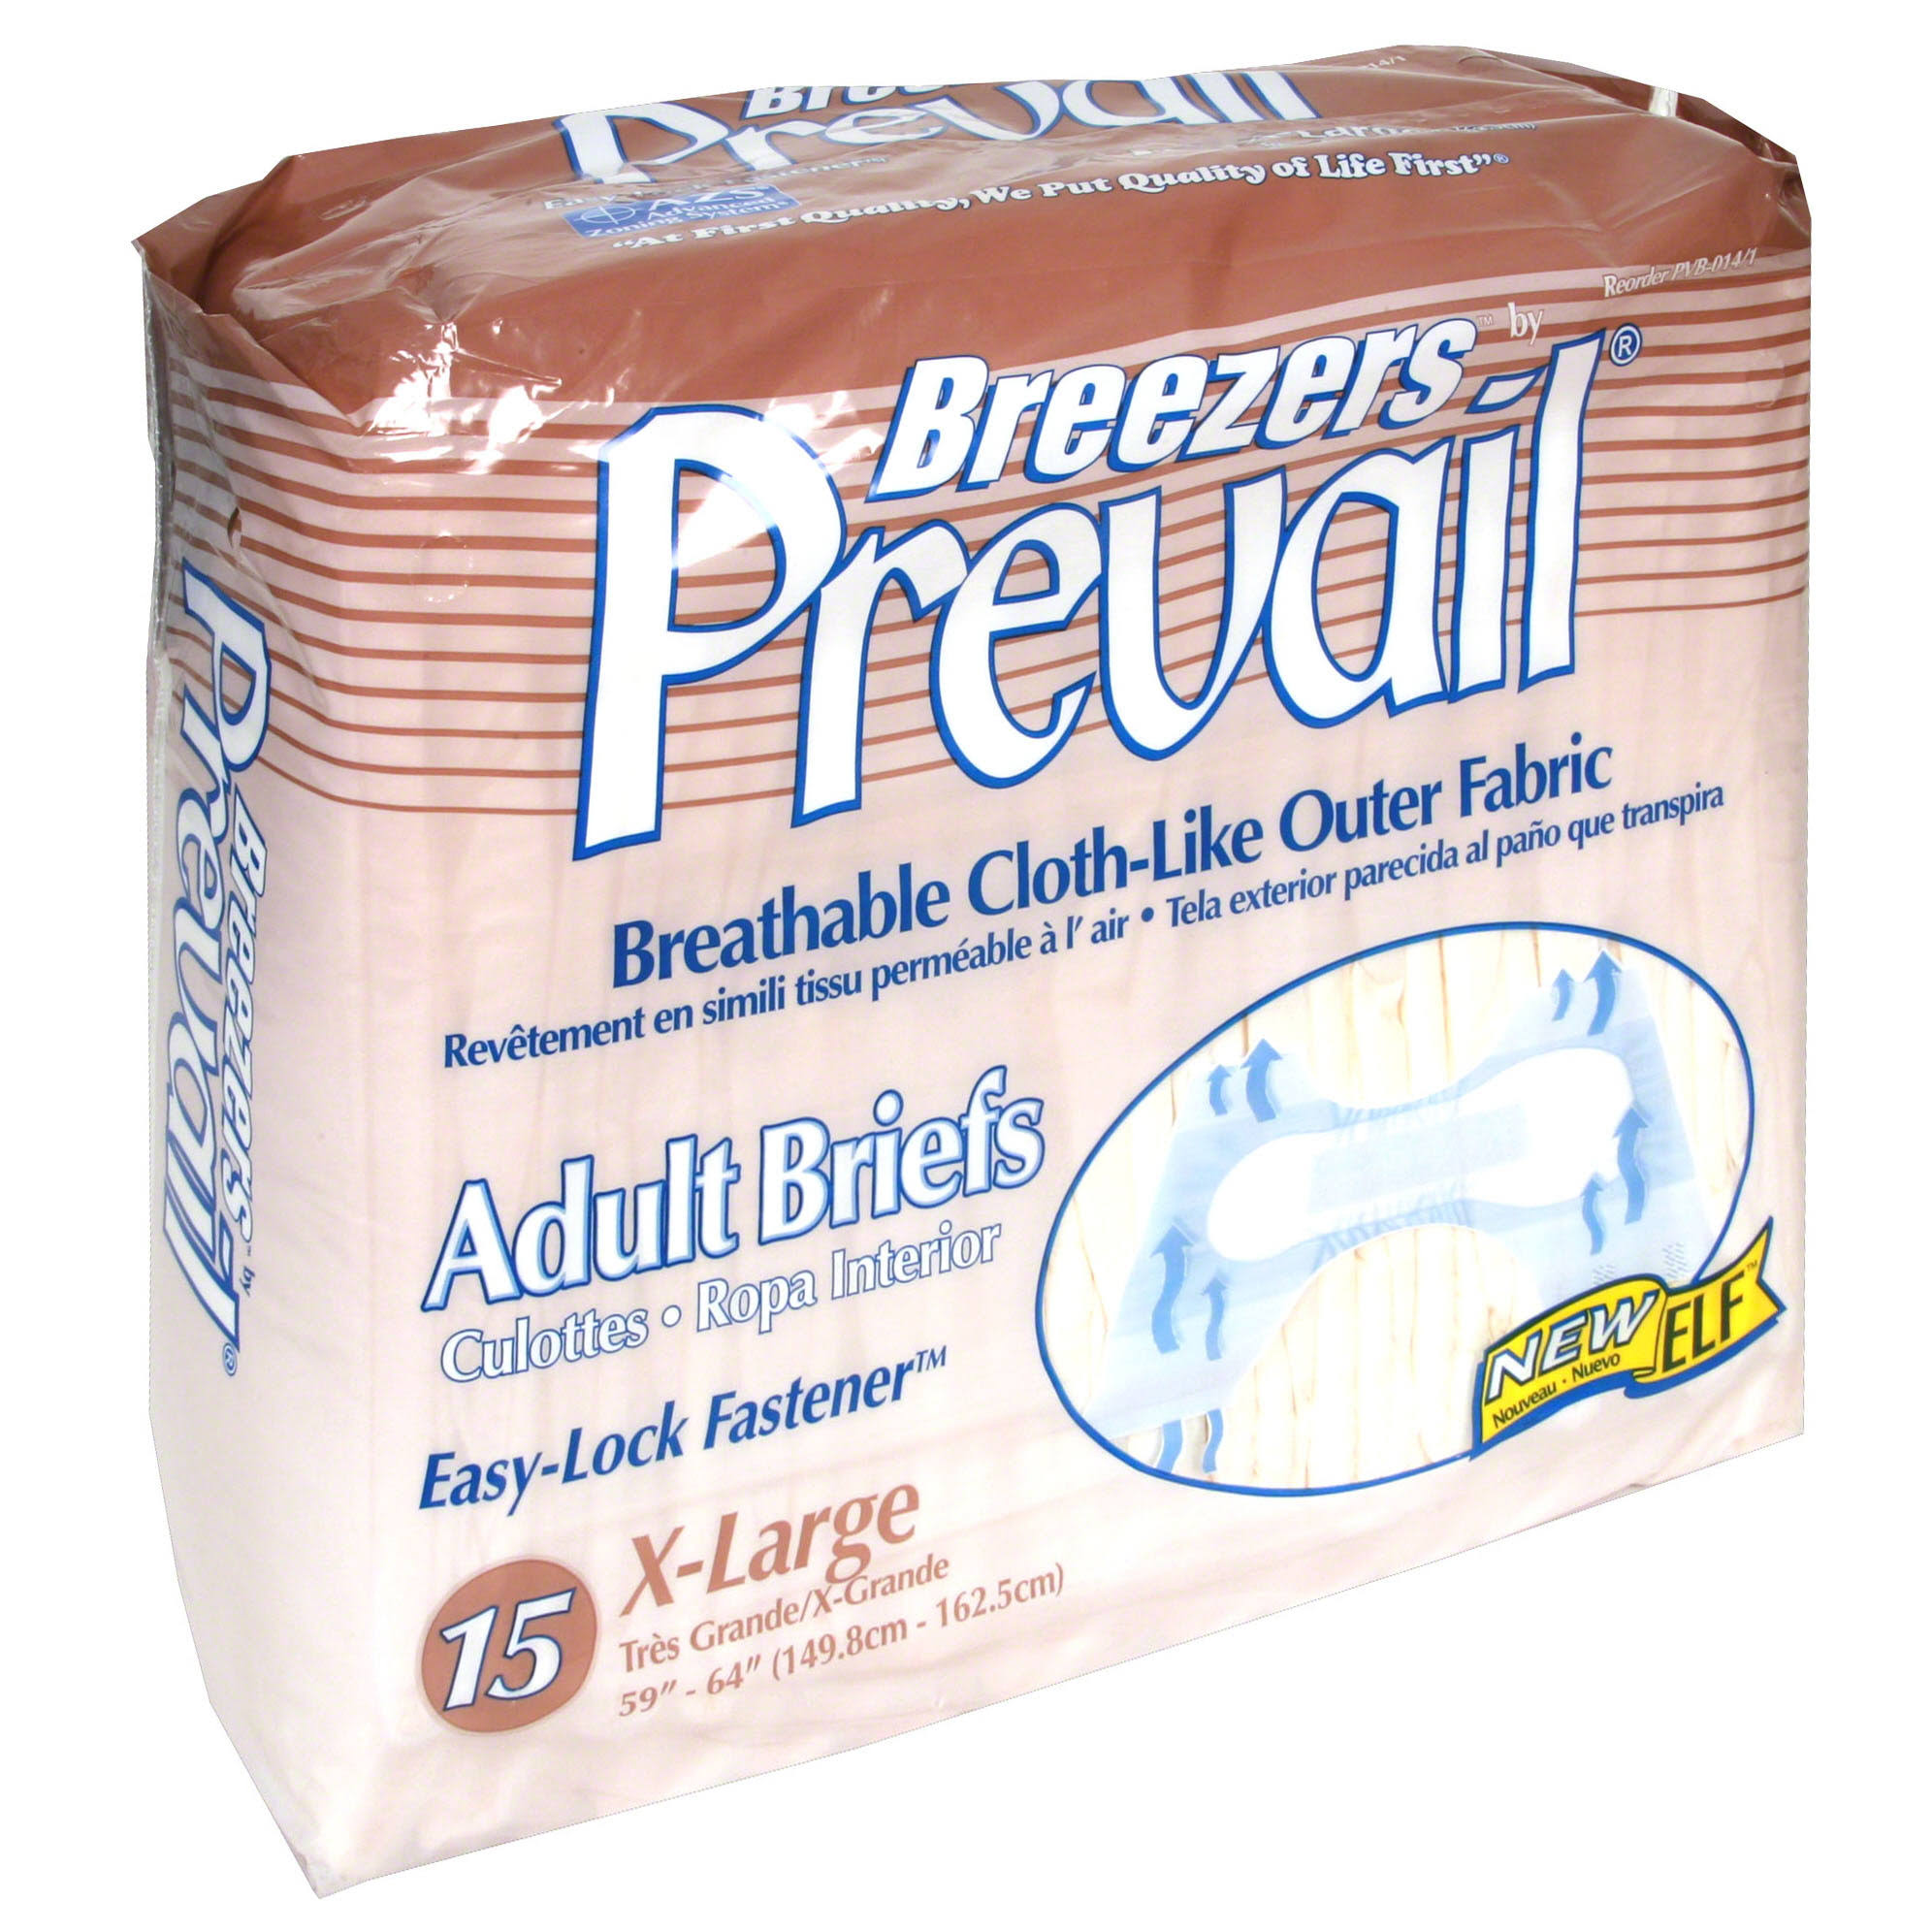 Prevail Breezers Adult Briefs - X-Large, 15 ct